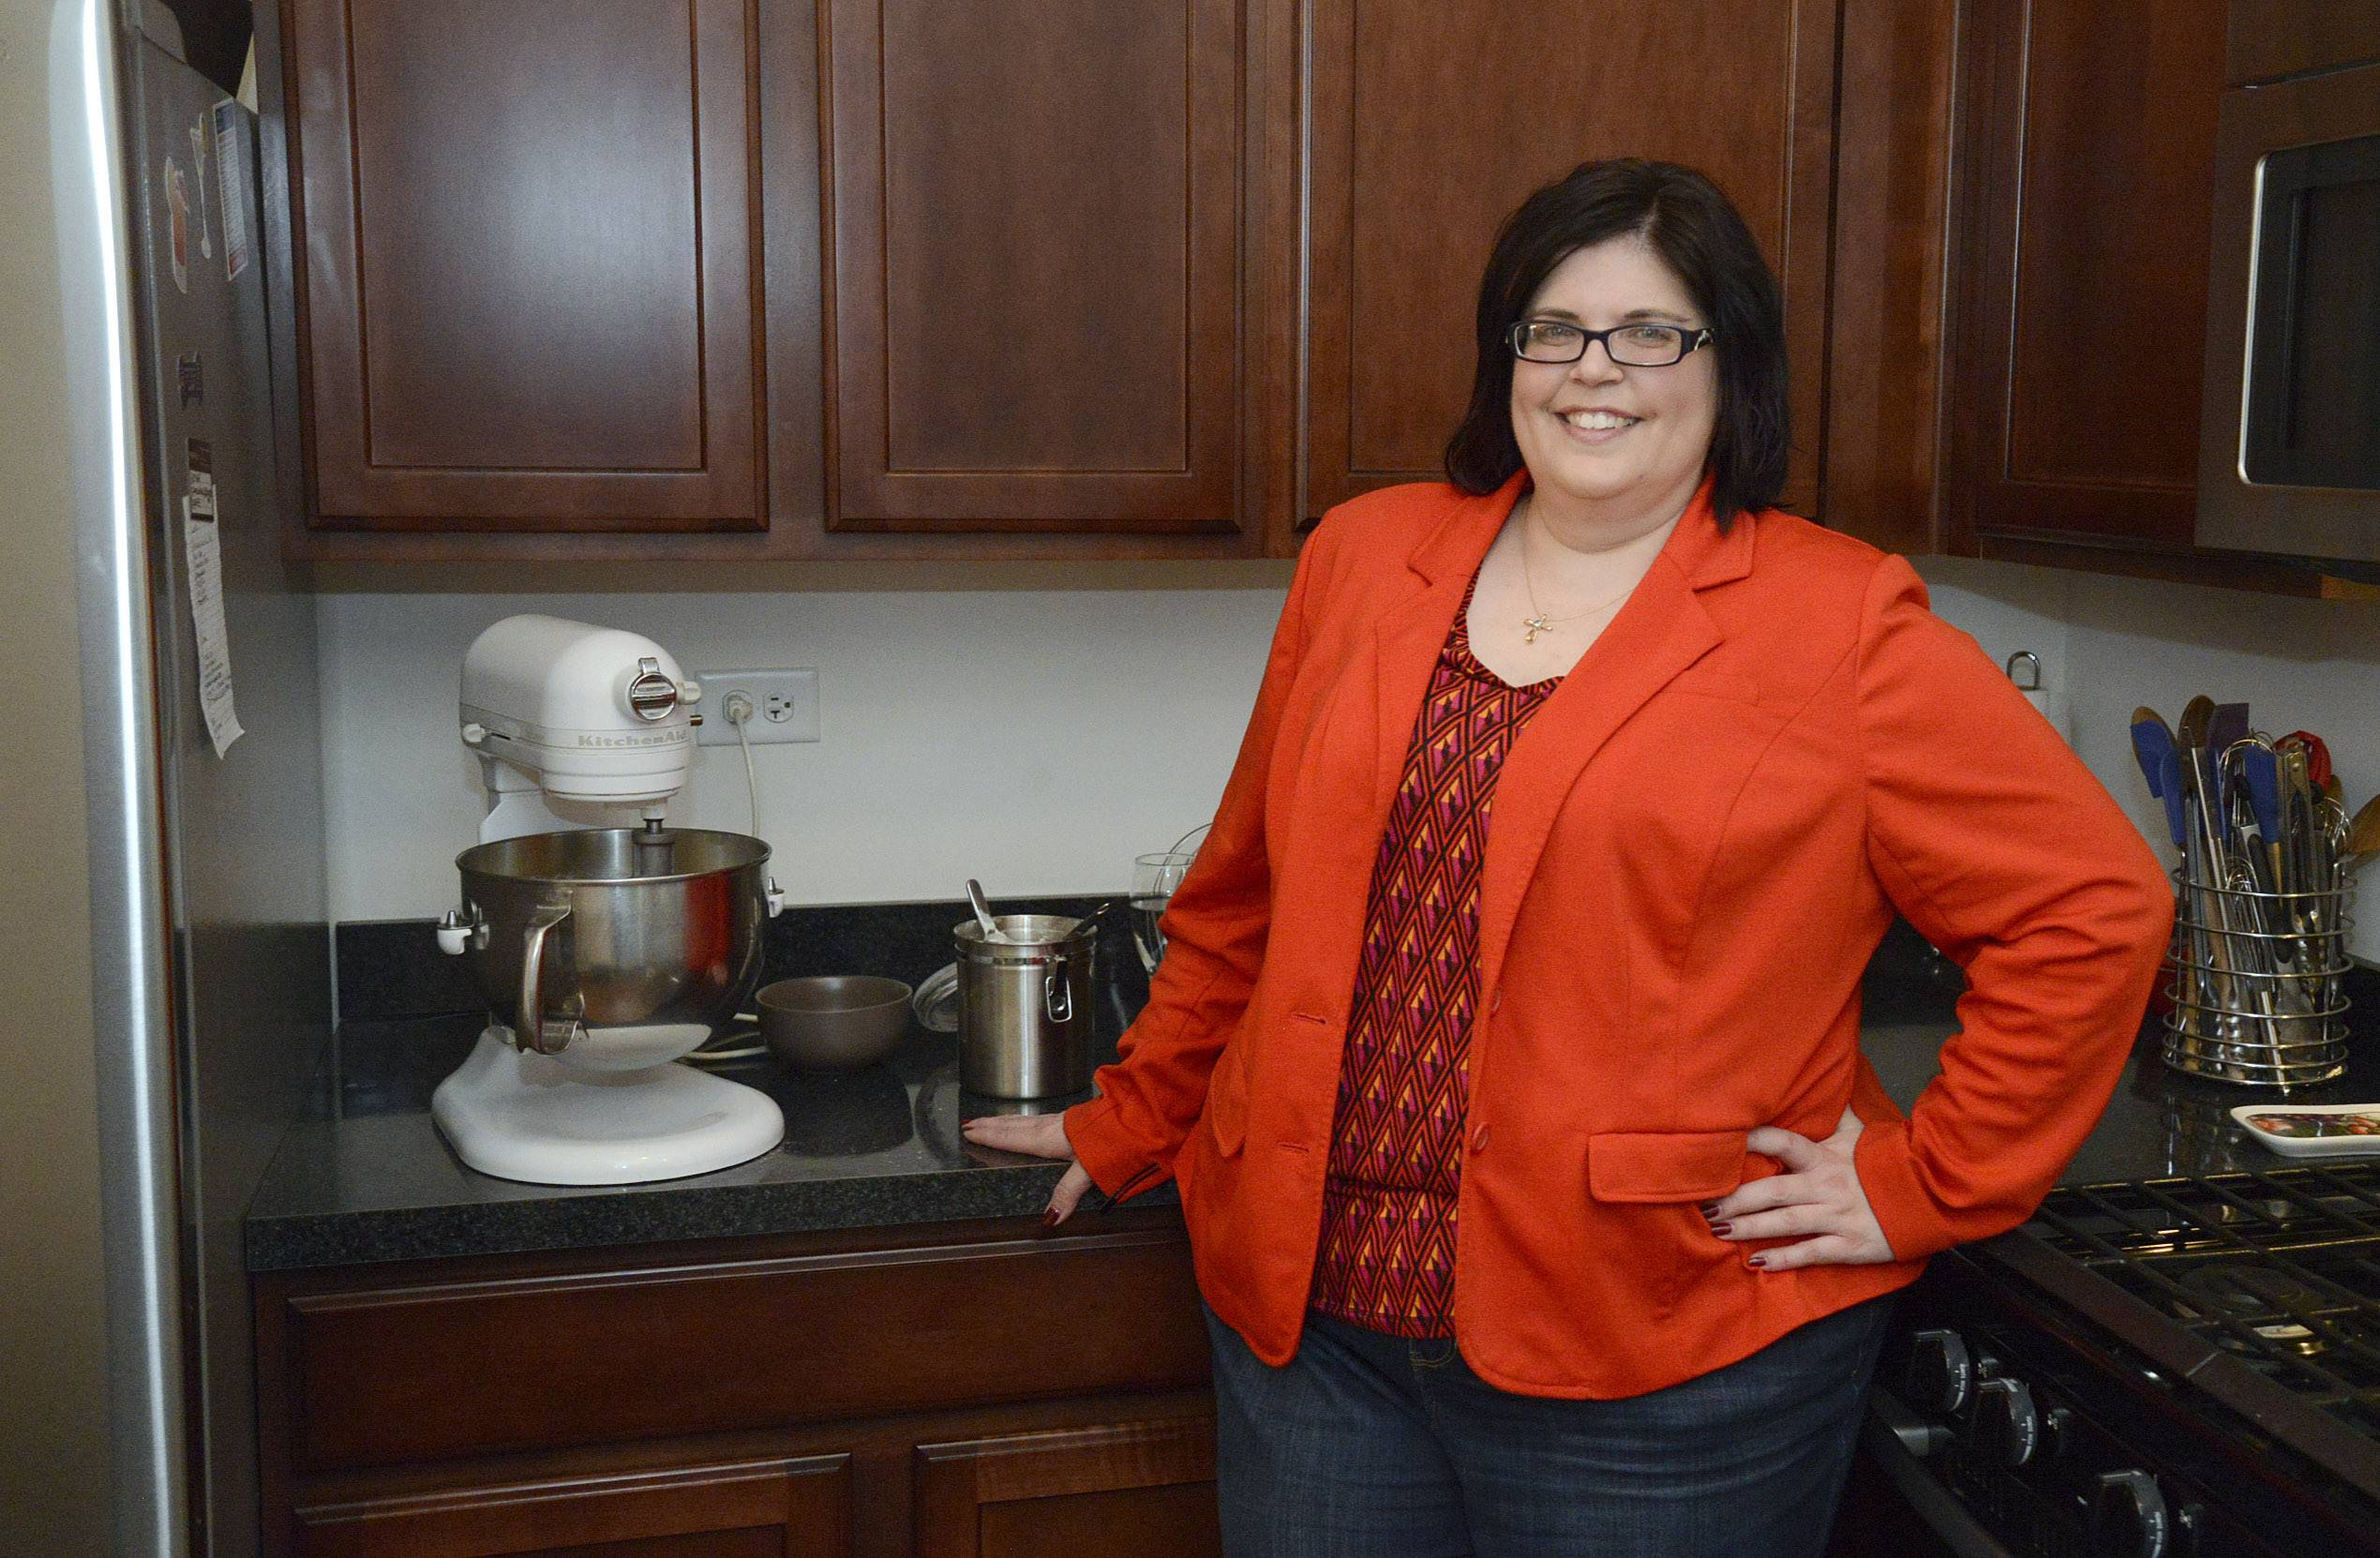 Christine Hernandez prepares meals for school children during the week and in her freetime decorates butter cookies for her FanCThatEvents decorative cookie shop on Etsy.